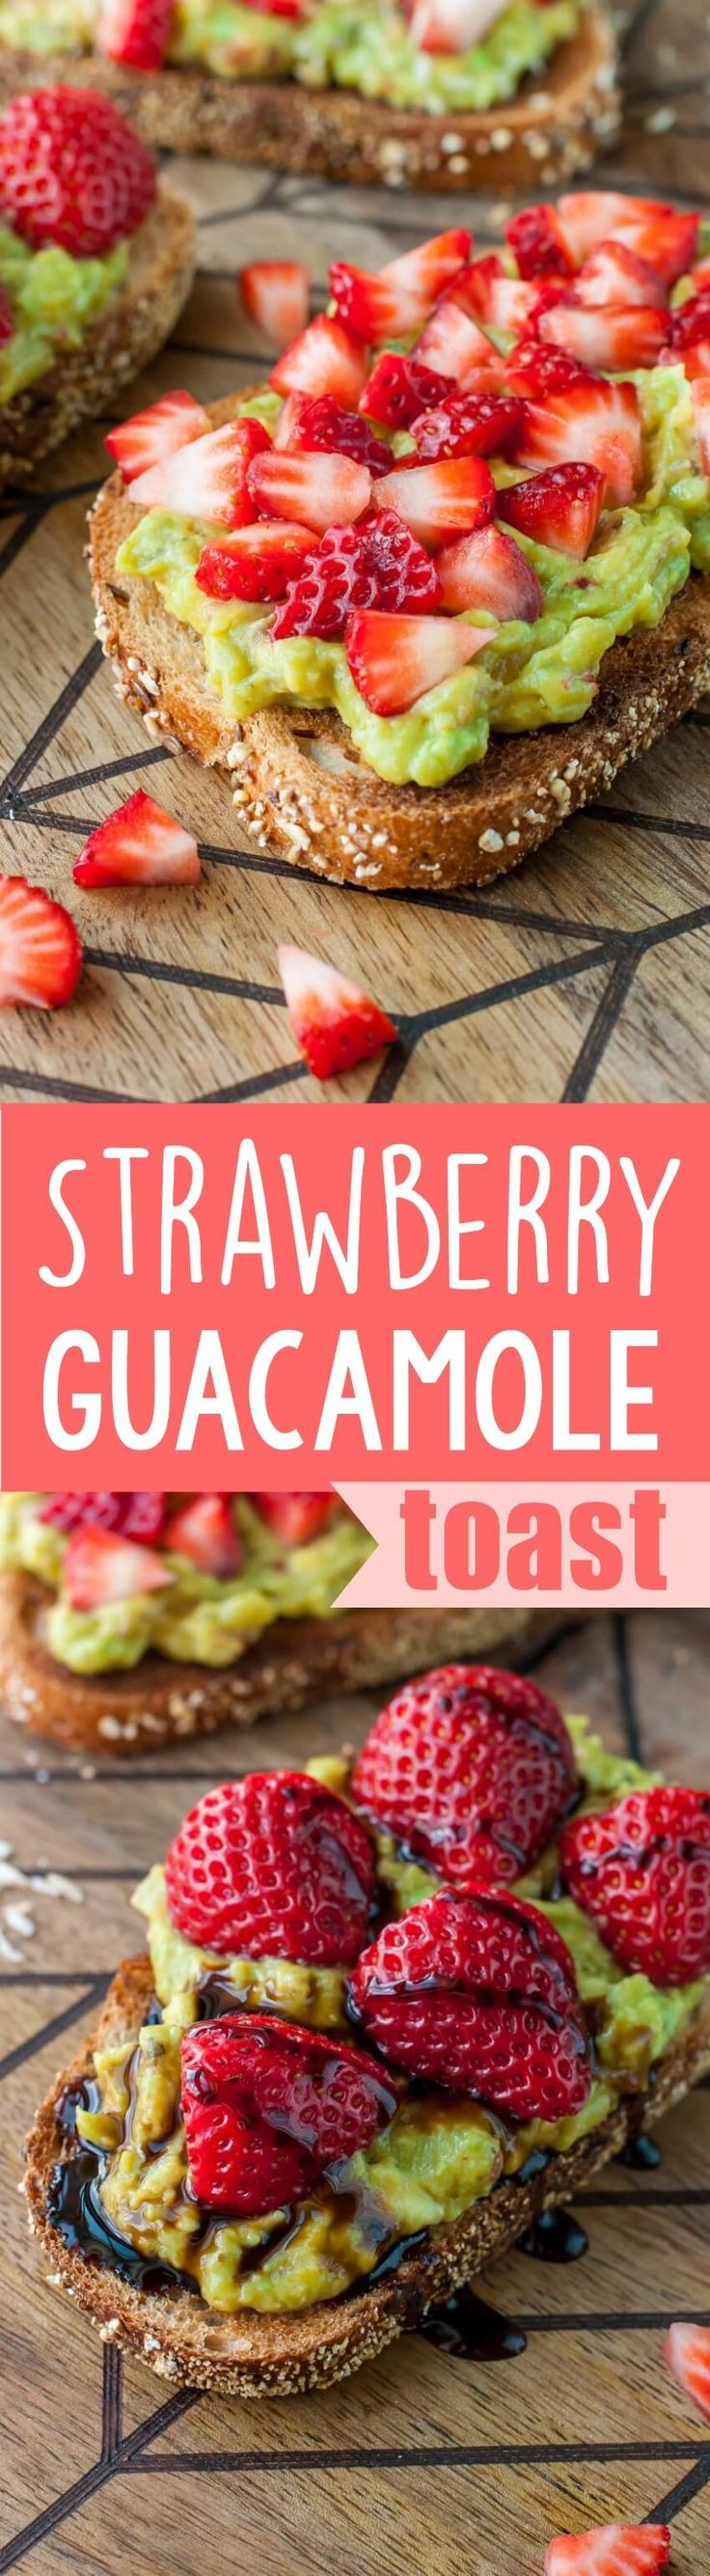 Get ready to shake up your breakfast routine with this sweet, savory, and oh-so-sassy Strawberry Guacamole Toast!